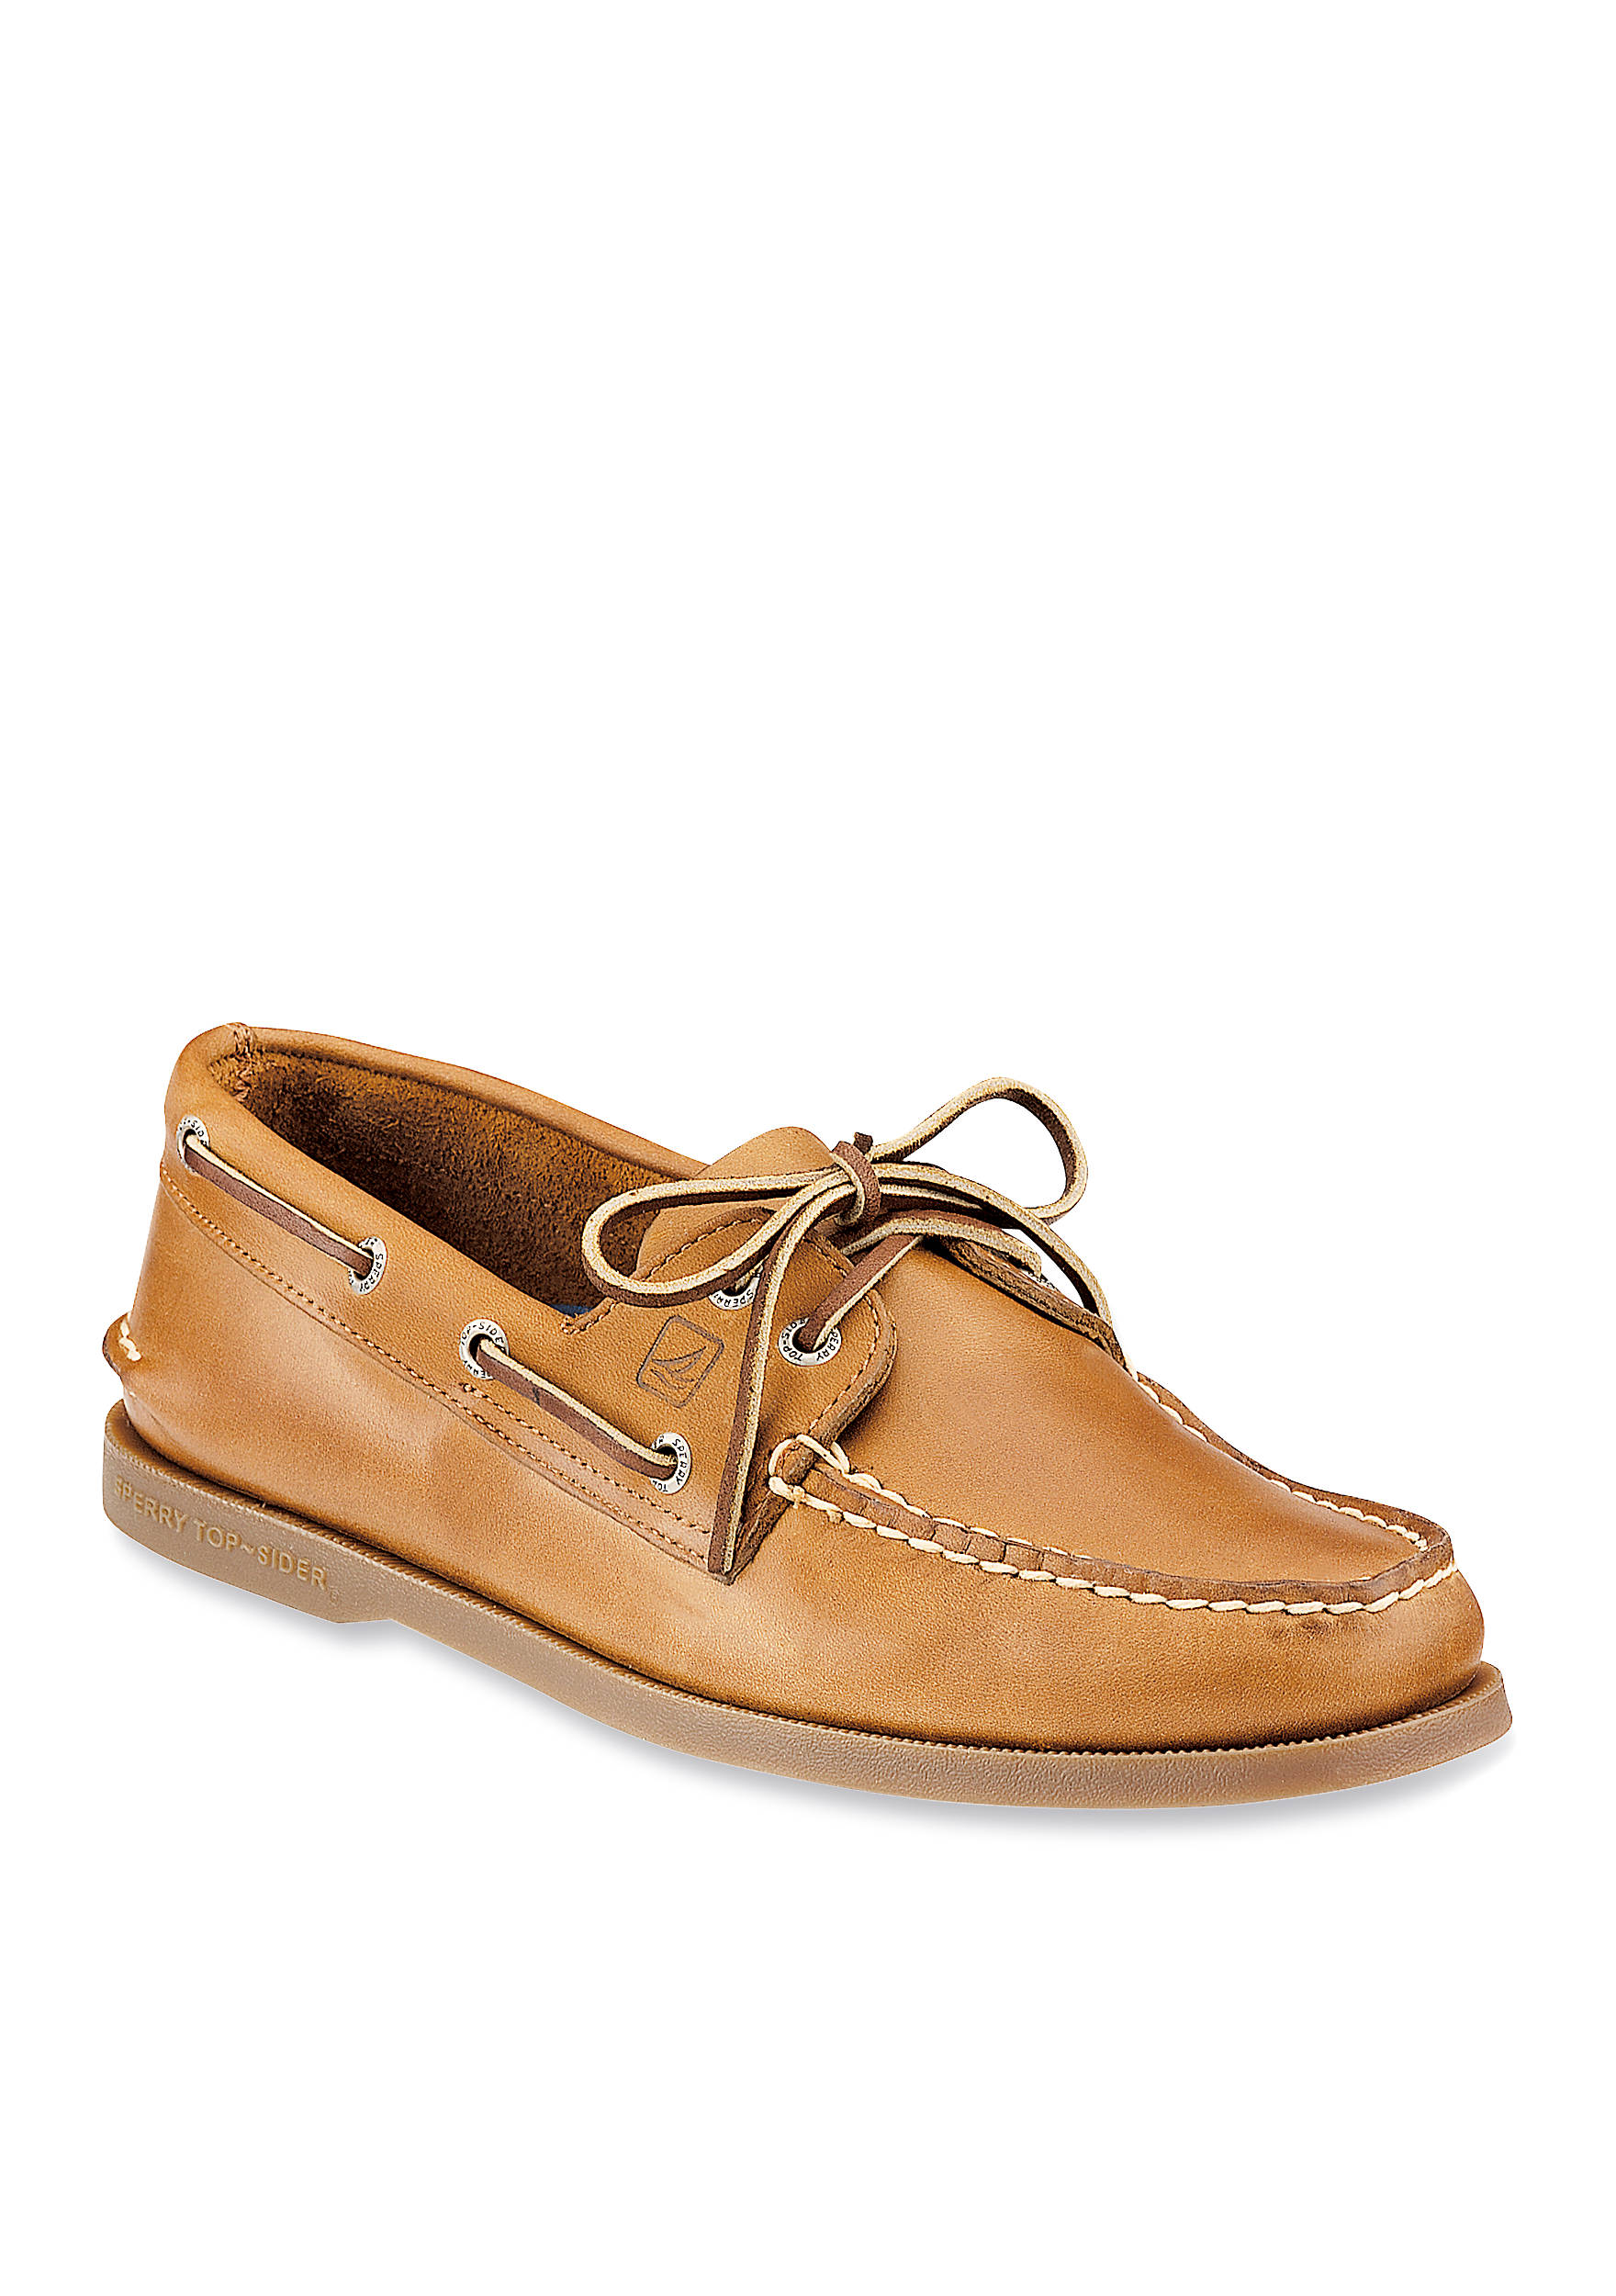 A O Sahara Casual Boat Shoe Extended Sizes Available